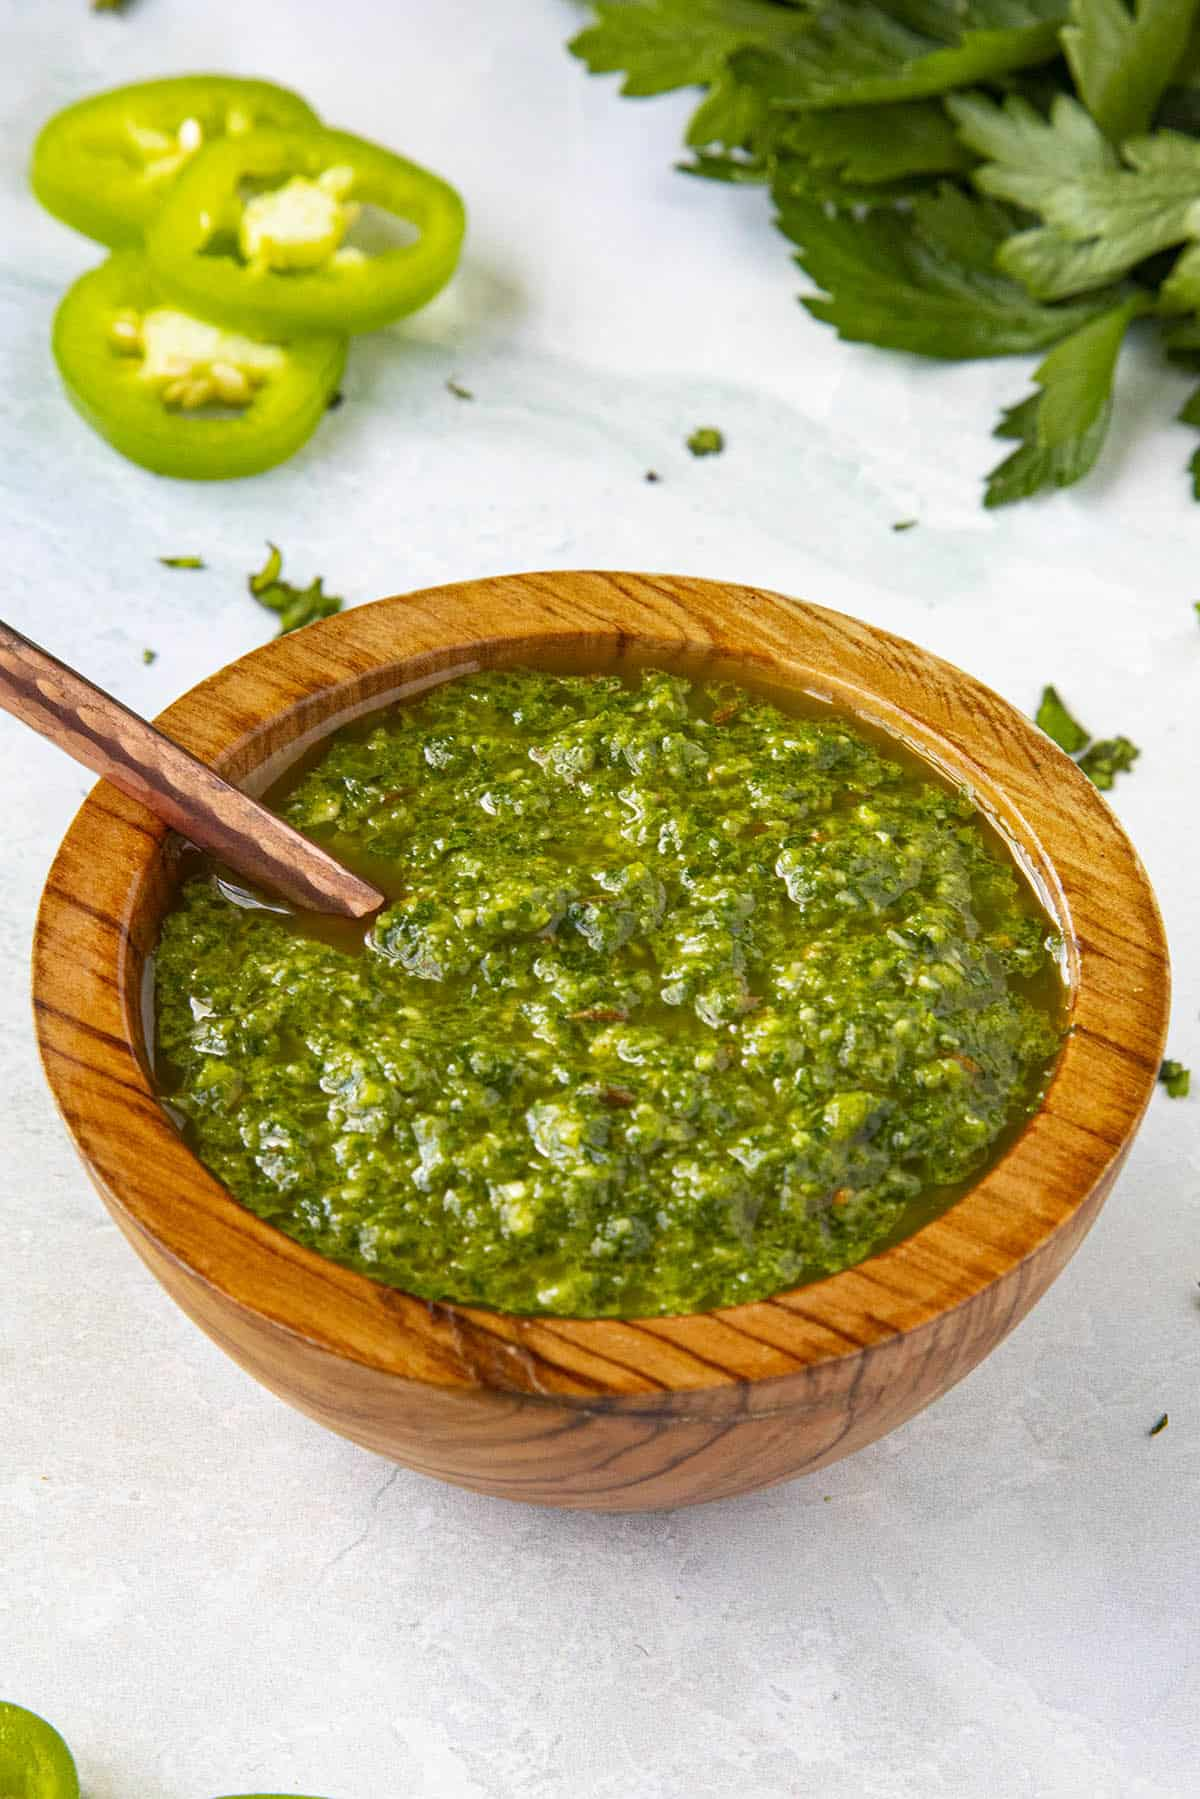 Green Harissa in a bowl with a serving spoon